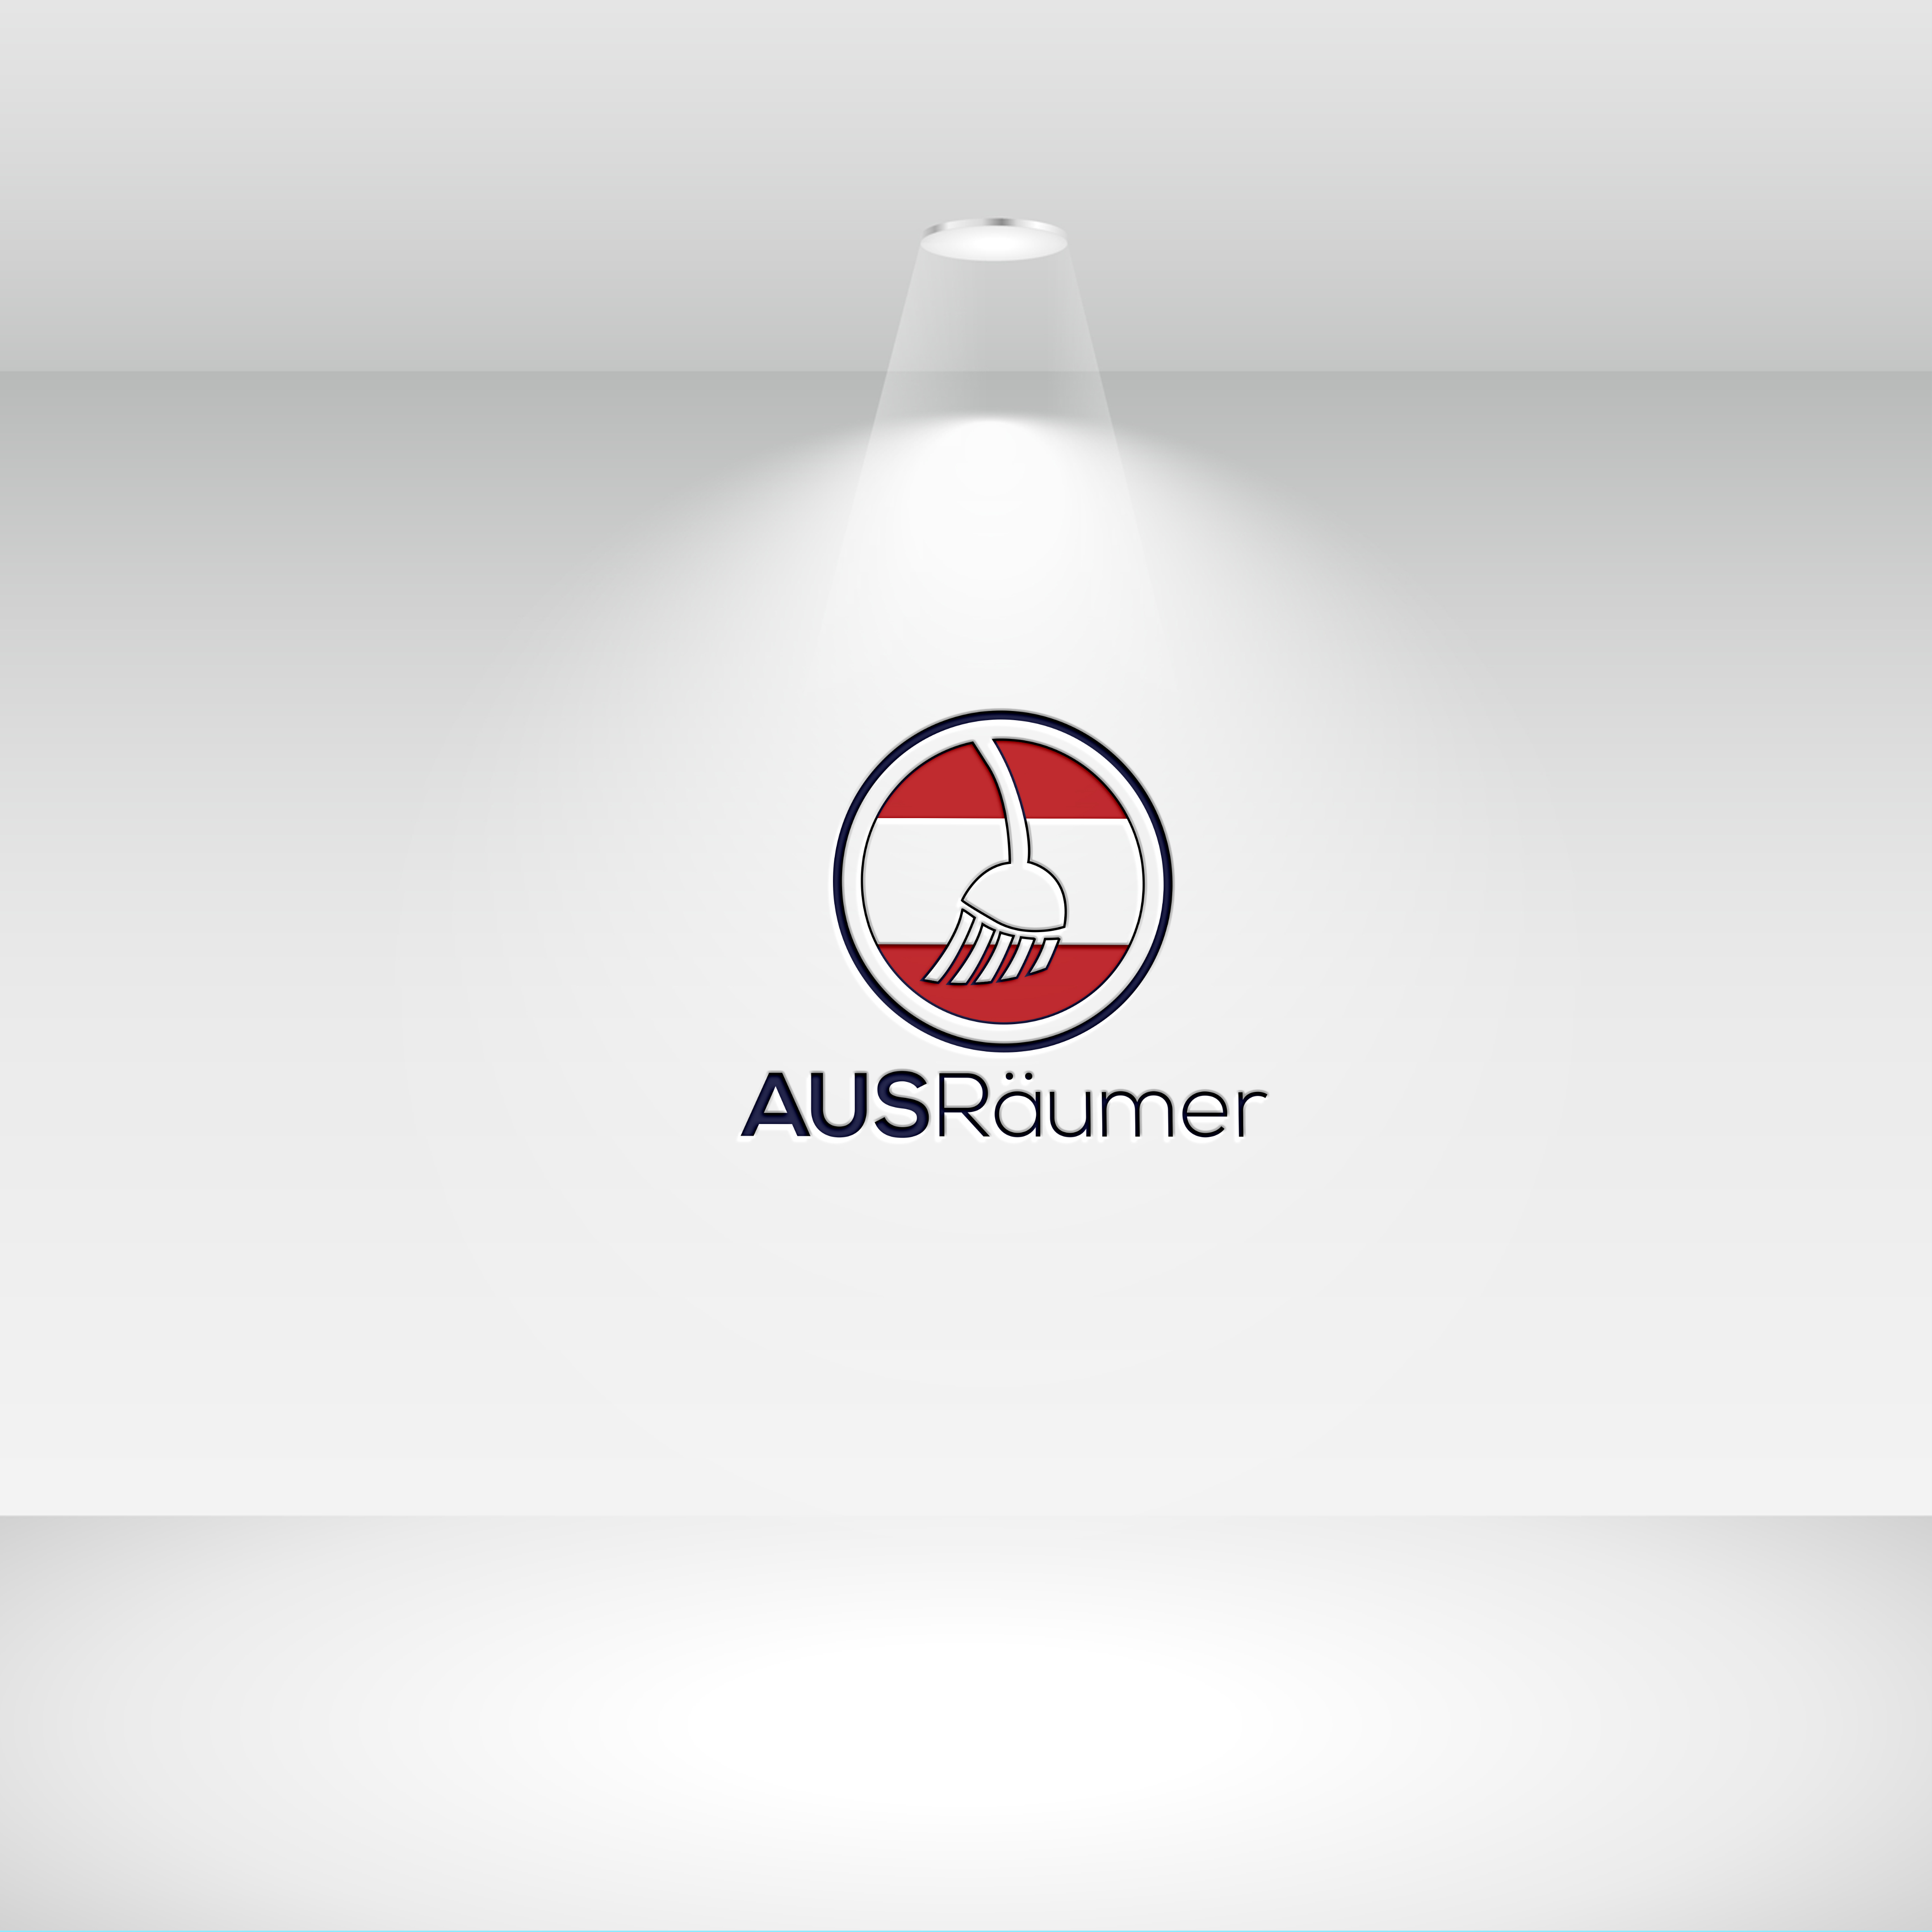 I will design professional business or personal logo in 24 hours